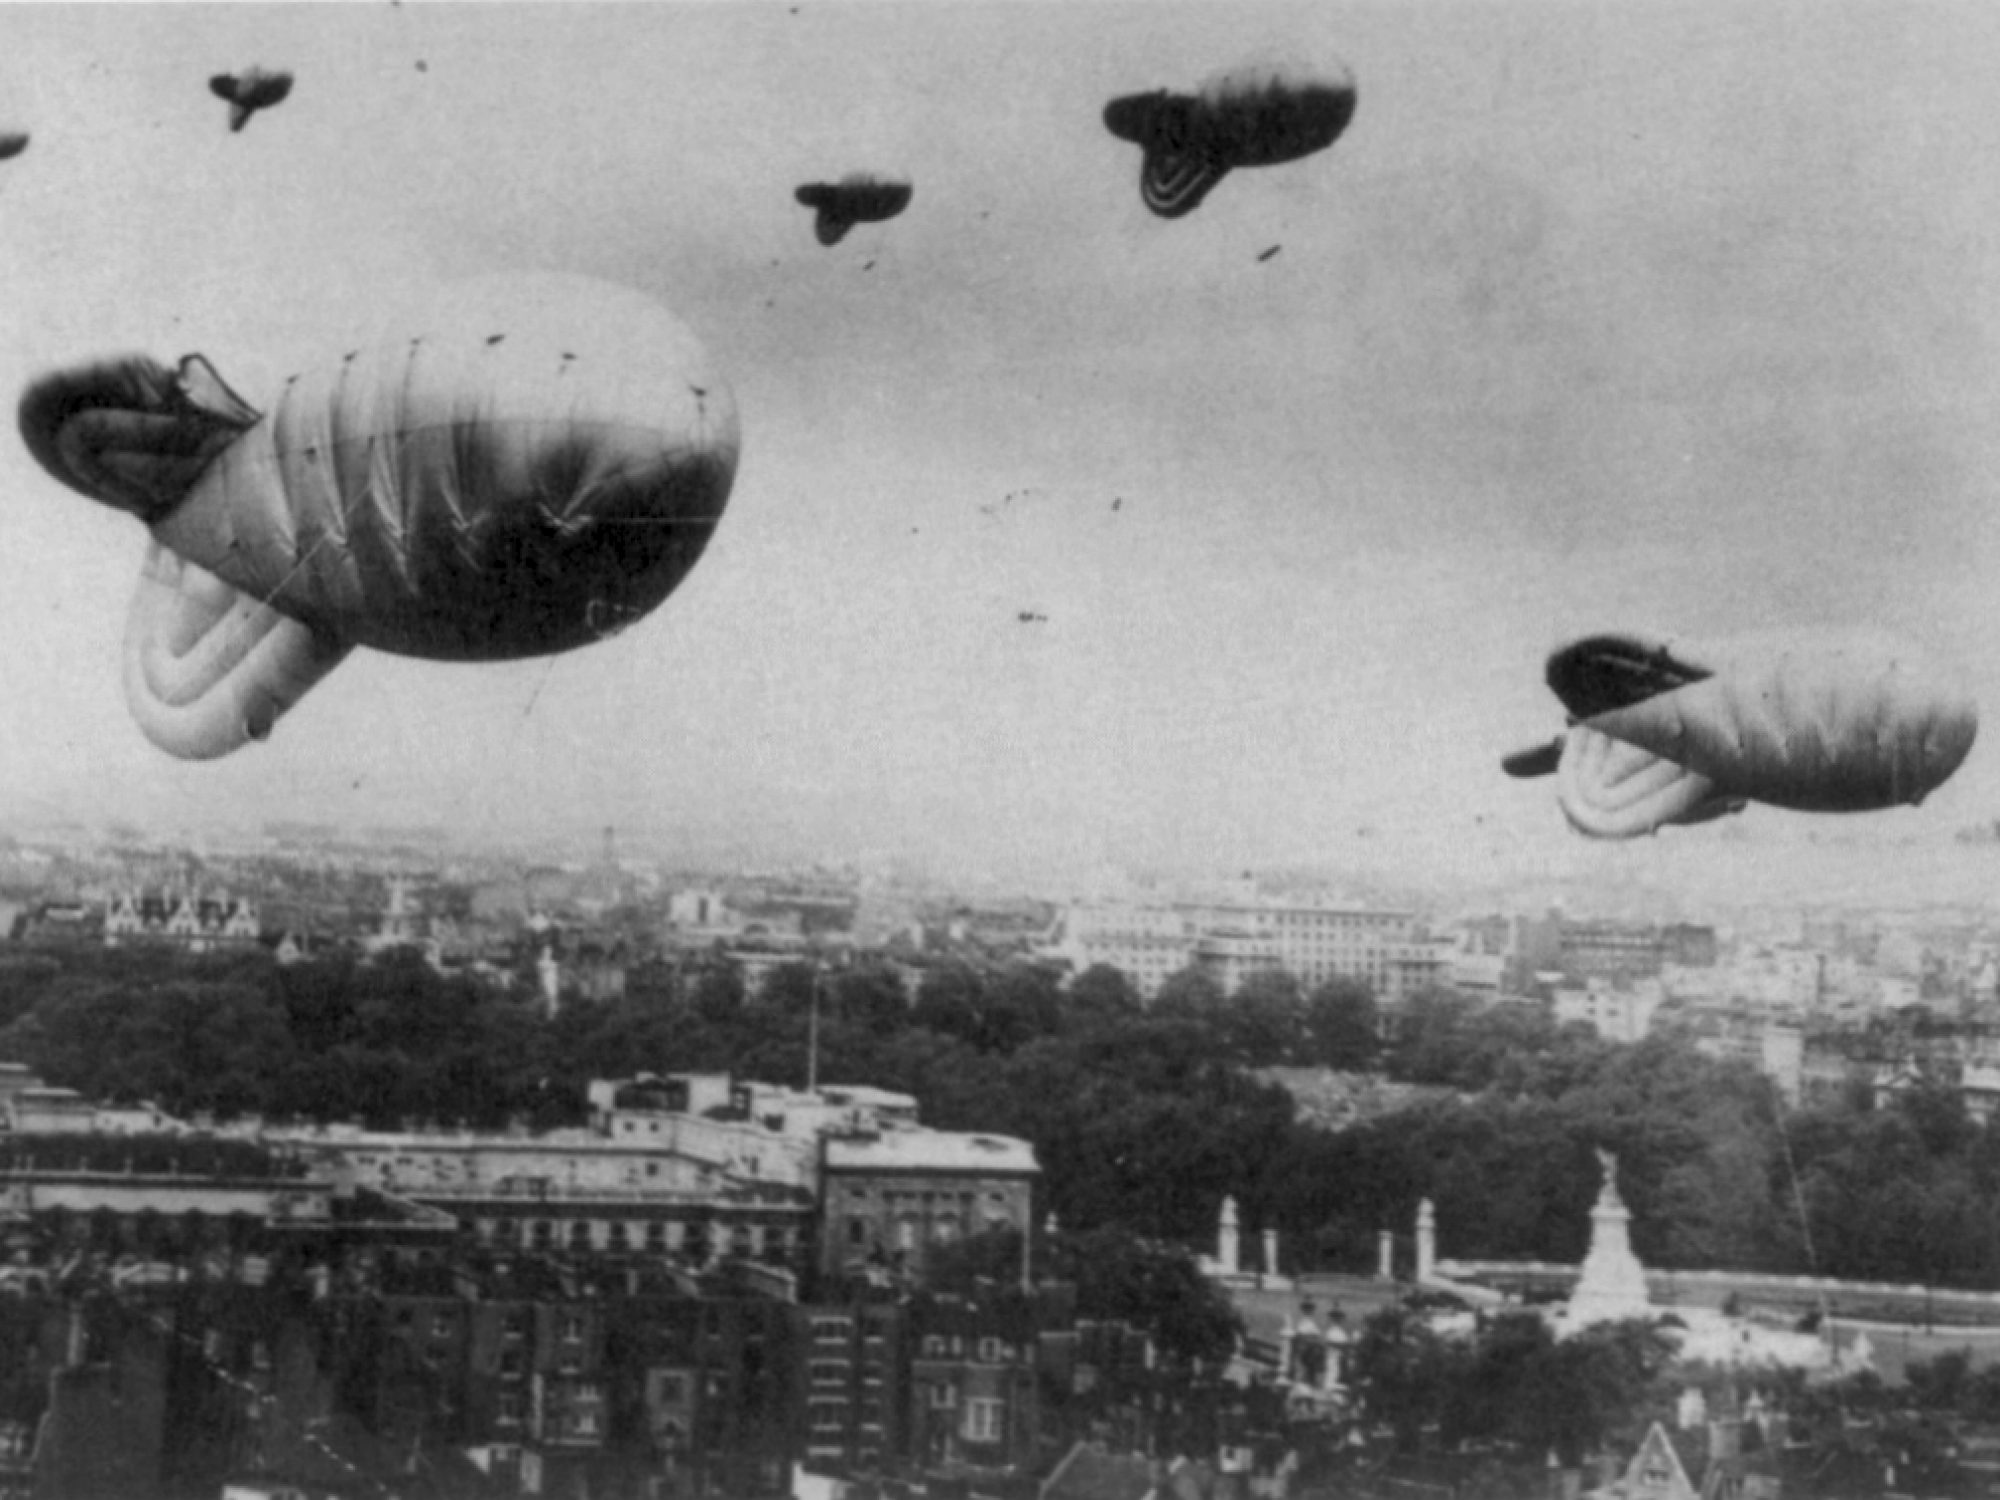 A black and white picture of large balloons over London in the sky